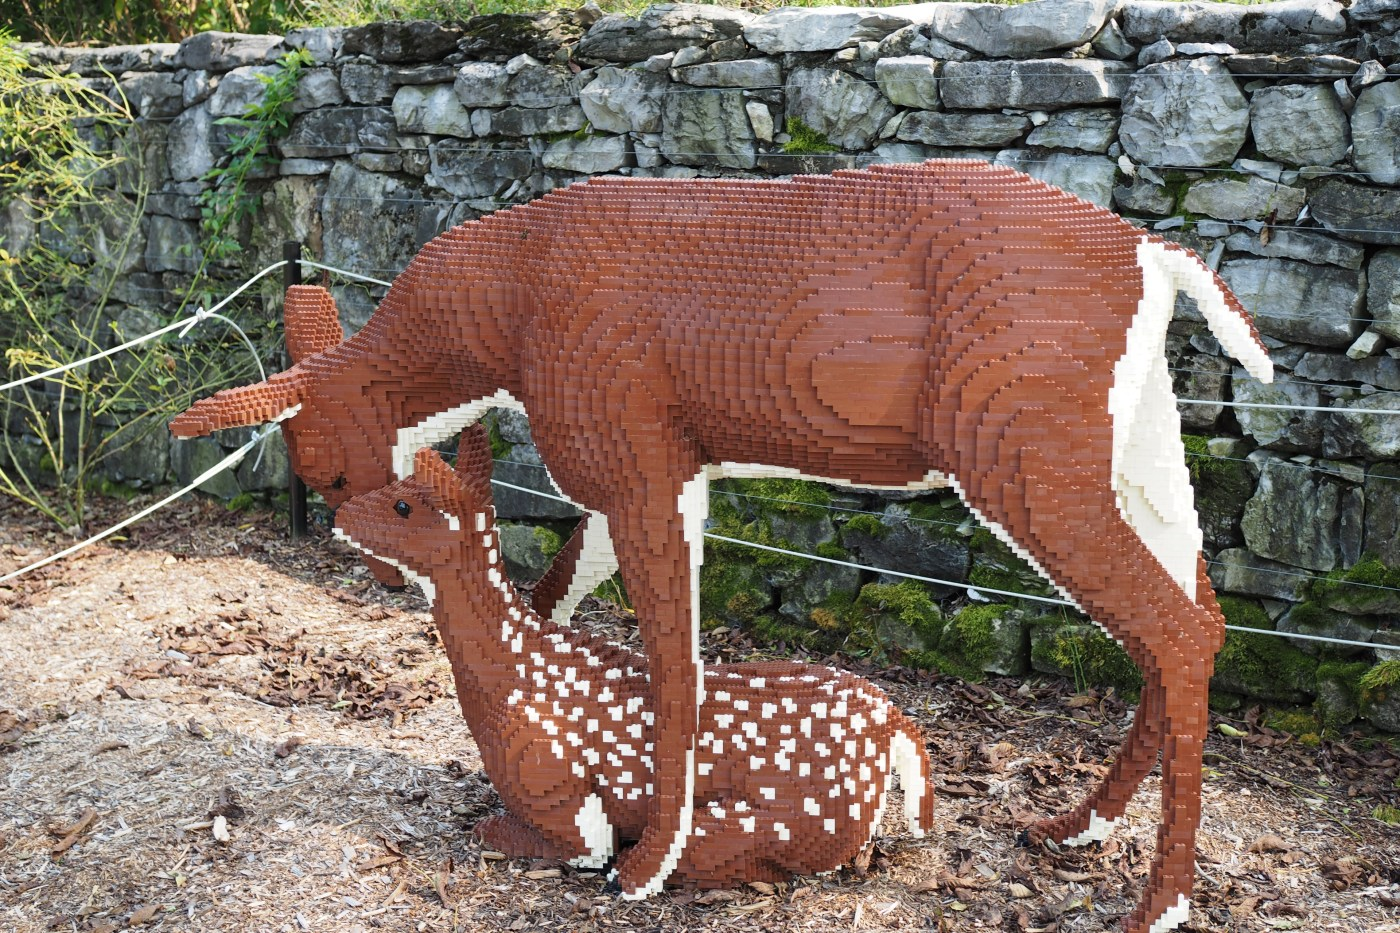 Nature Connects Lego Deer scene